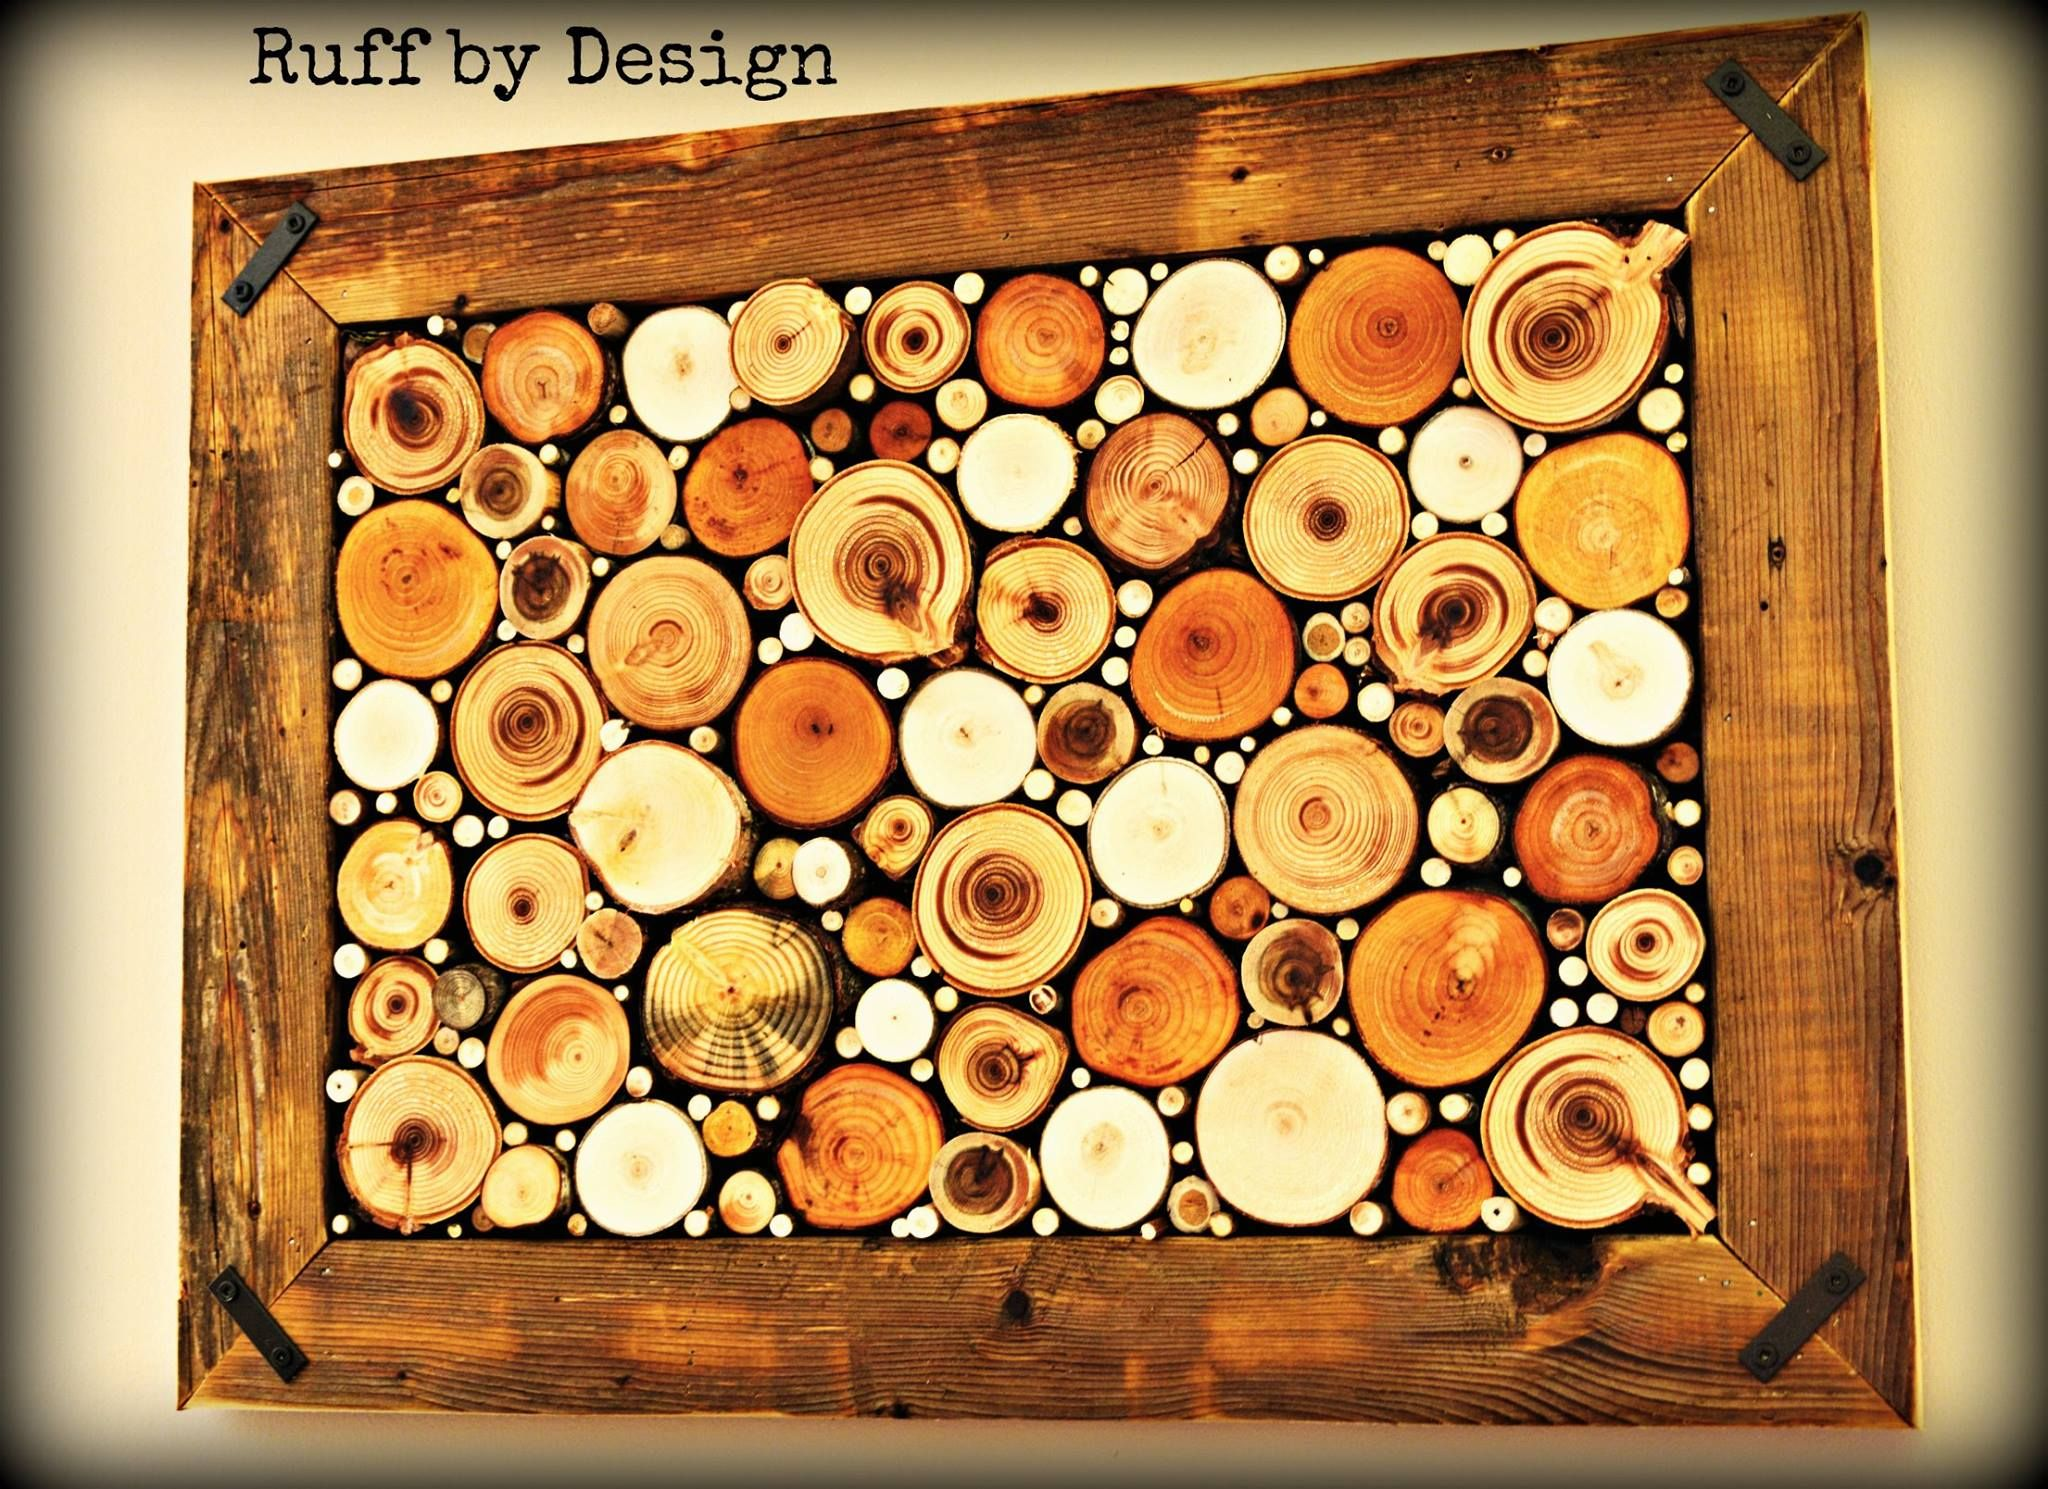 Raw wood slice wall decor Ruff by Design, Kelly Ruff, Kitimat BC ...